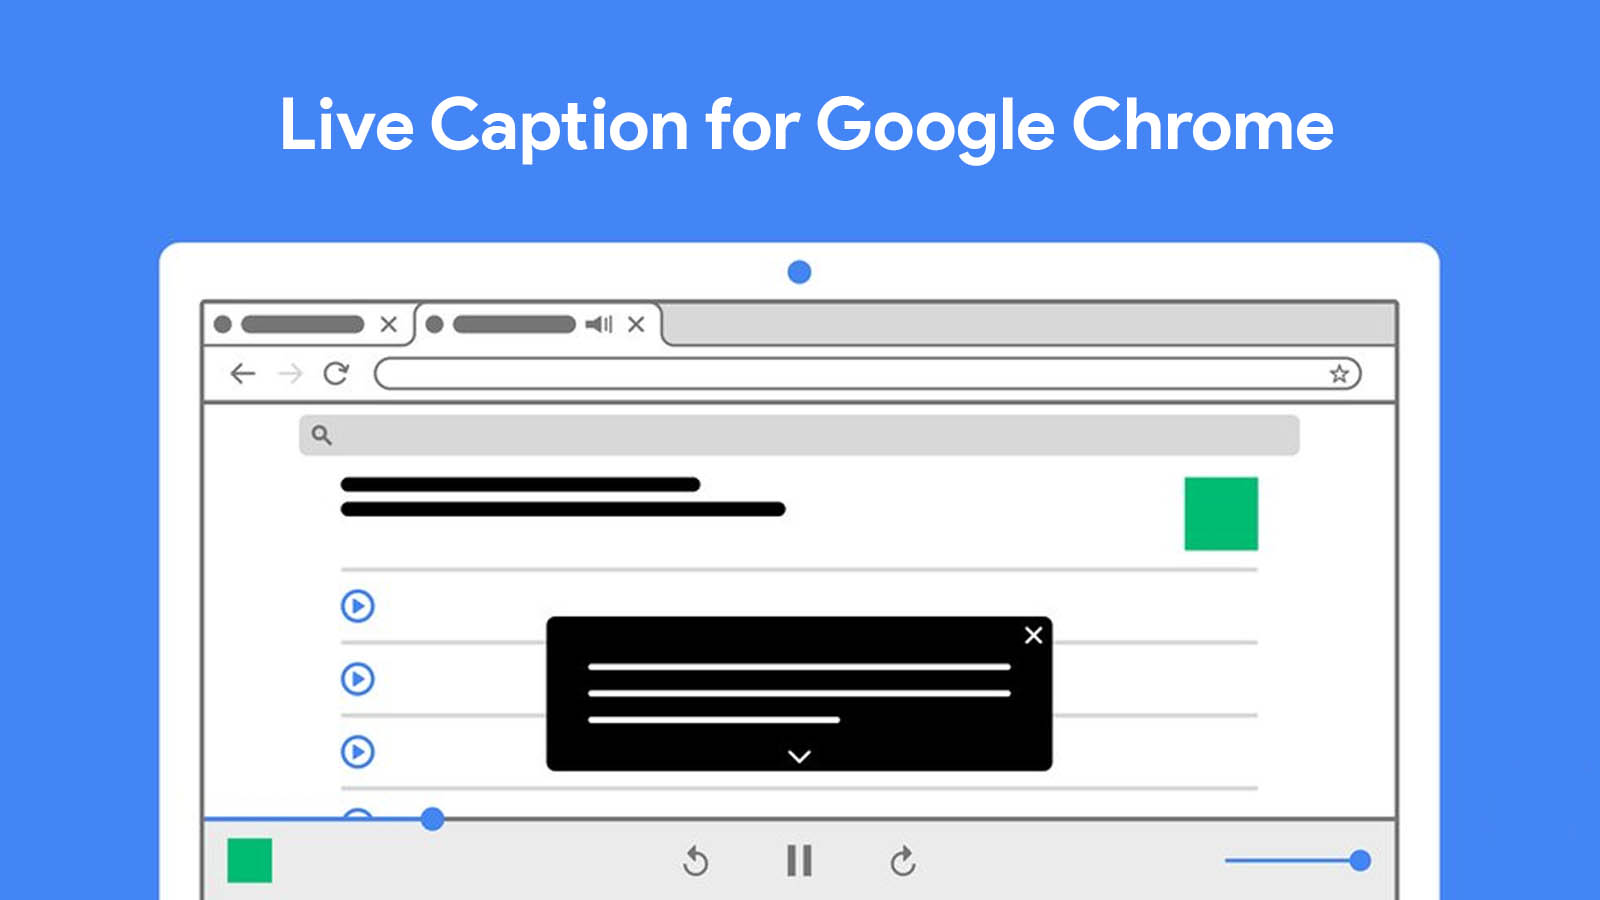 Google officially launches Live Caption for audio and video in the Chrome browser